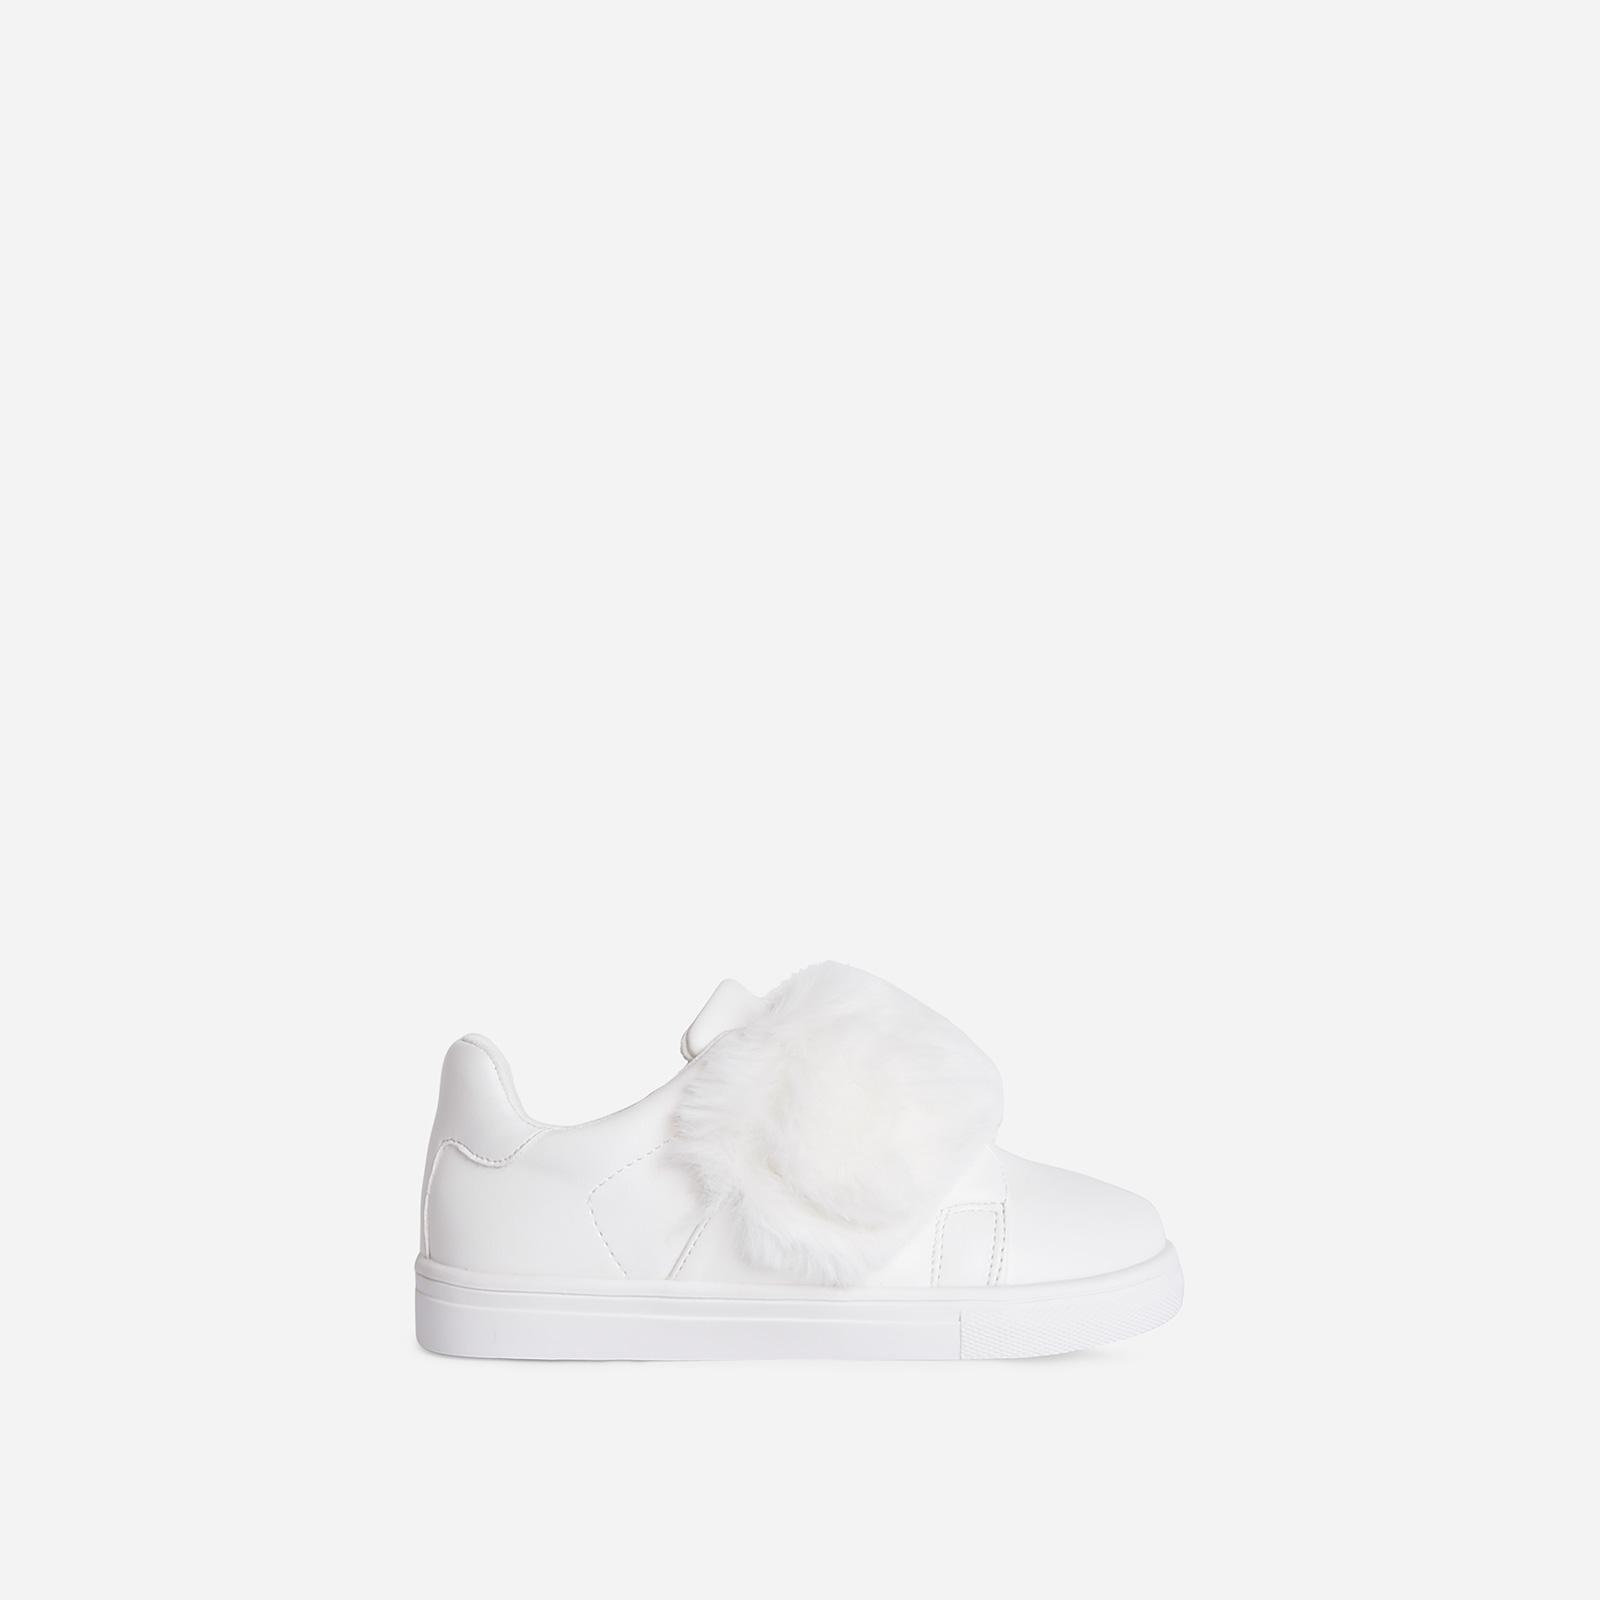 Plush-Baby Kid's Fluffy Stripe Trainer In White Faux Leather Kid's, White